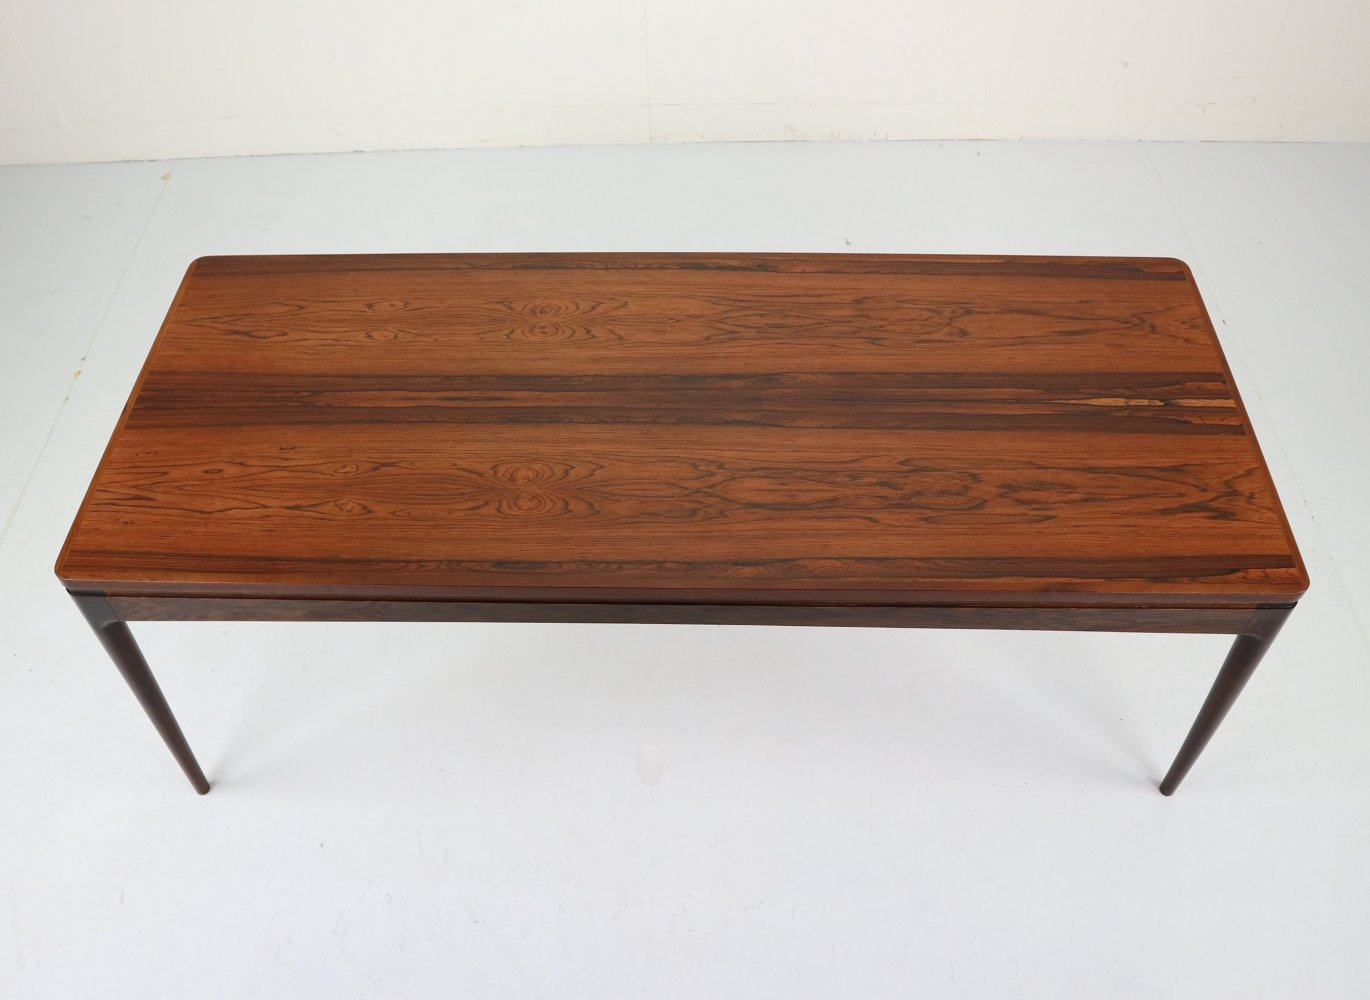 Rosewood Coffee Table by Ib Kofod Larsen for Christian Linneberg, Denmark 1960s